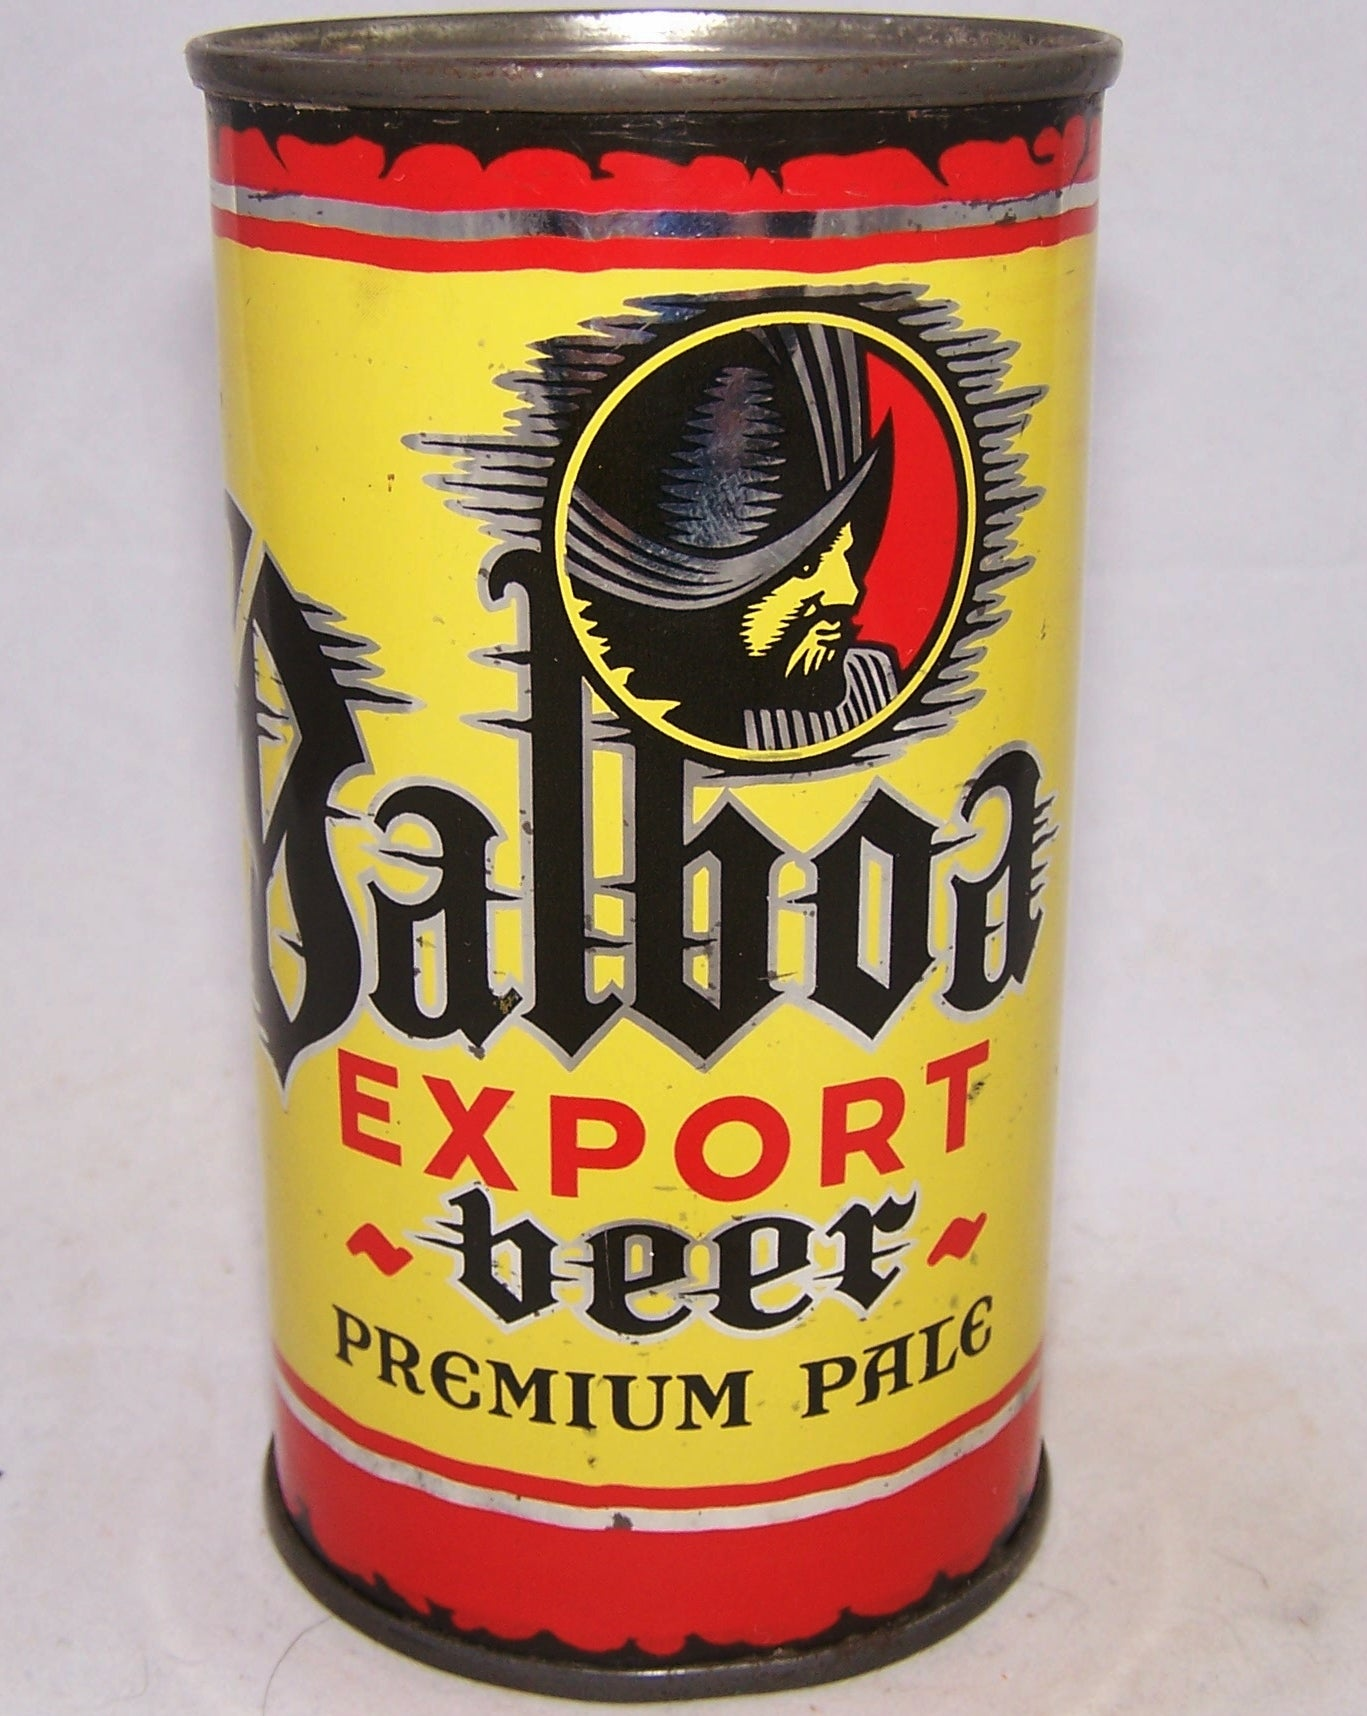 Balboa Export Beer, USBC 32-40, Grade 1/1+ Sold on 02/23/18